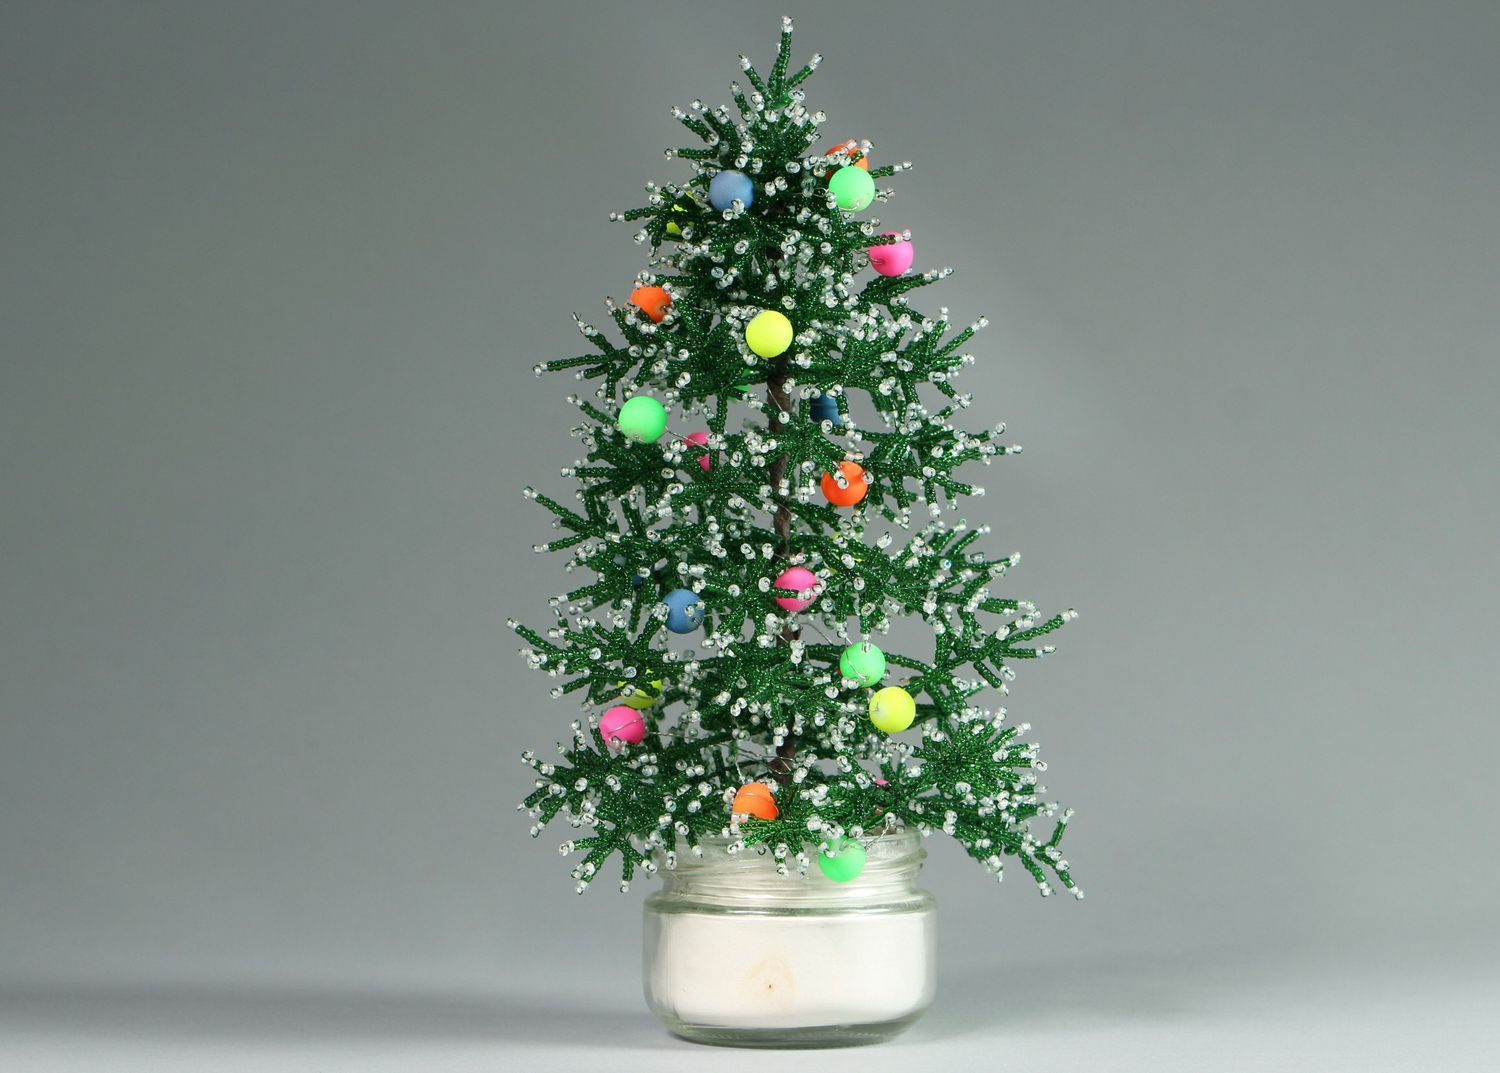 Decorative Christmas tree for New Year photo 18